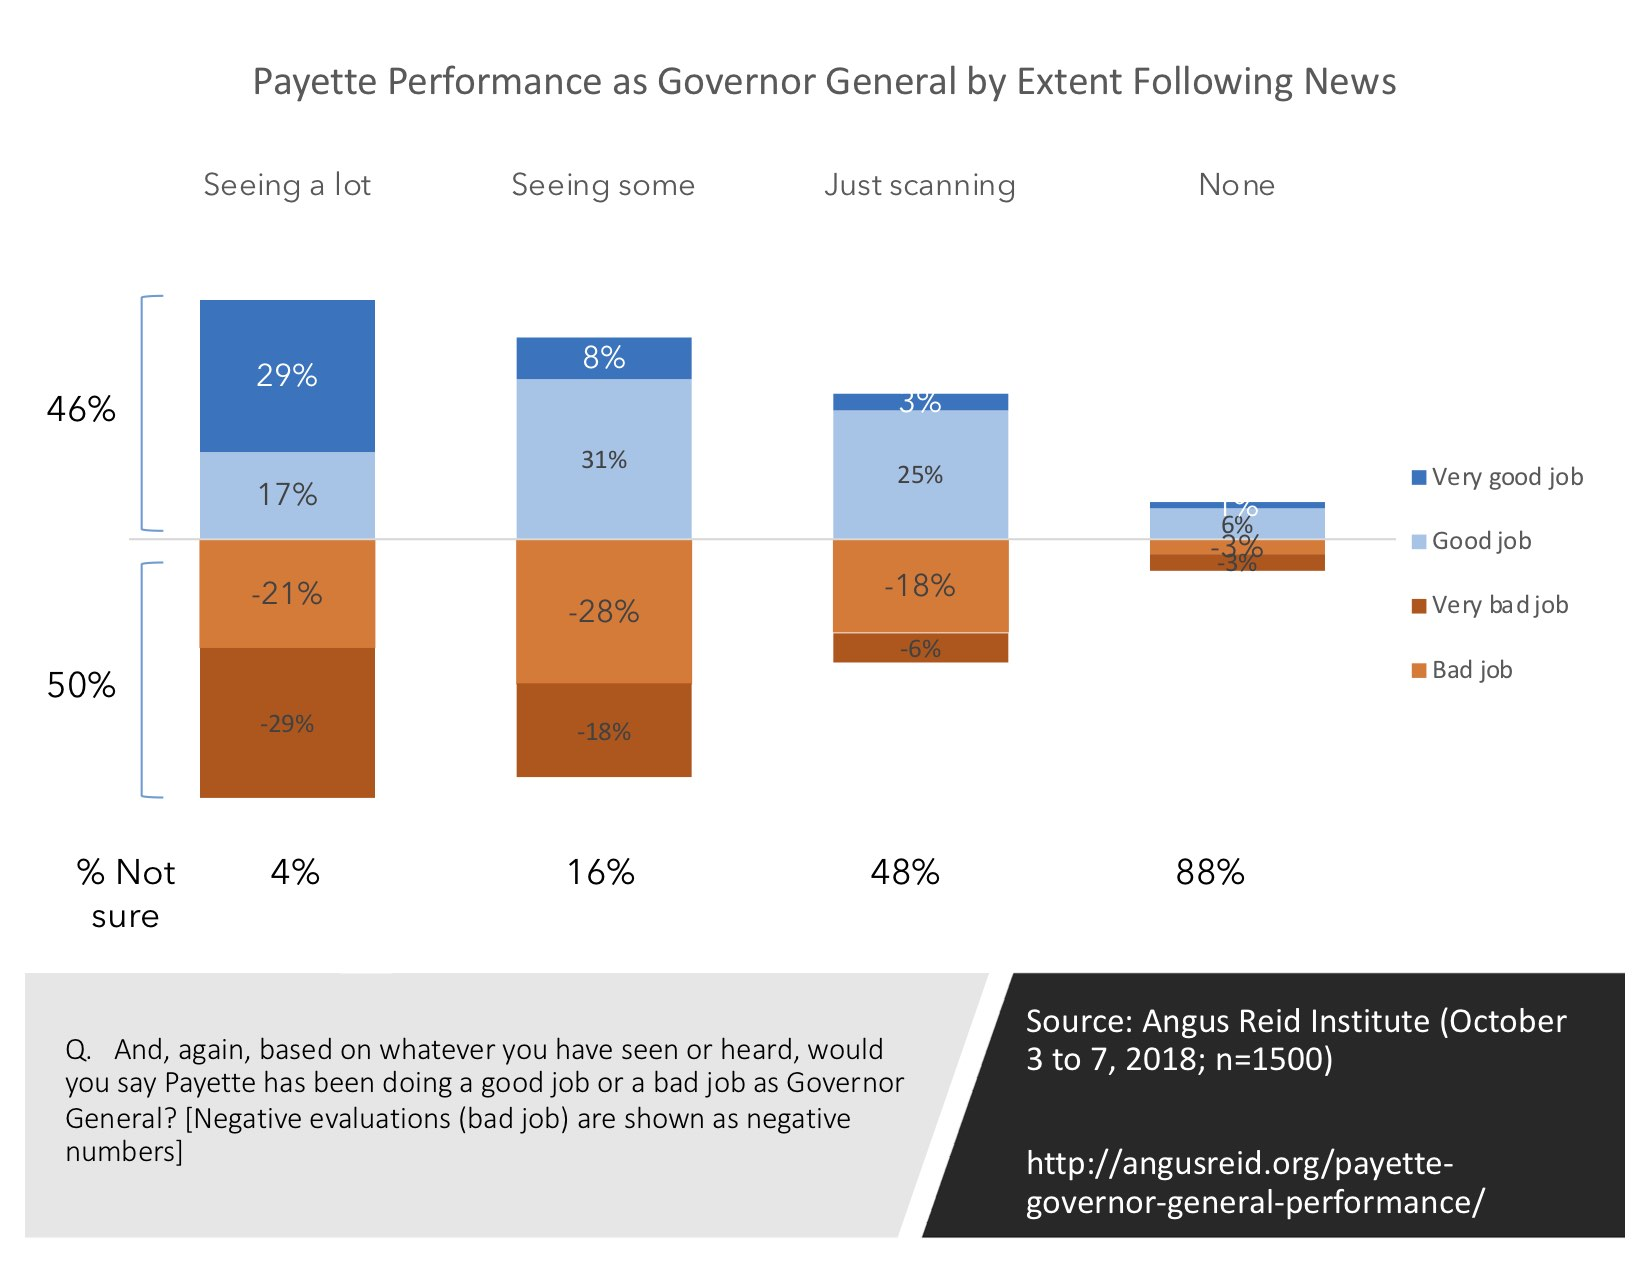 Perception of GG by News Attention